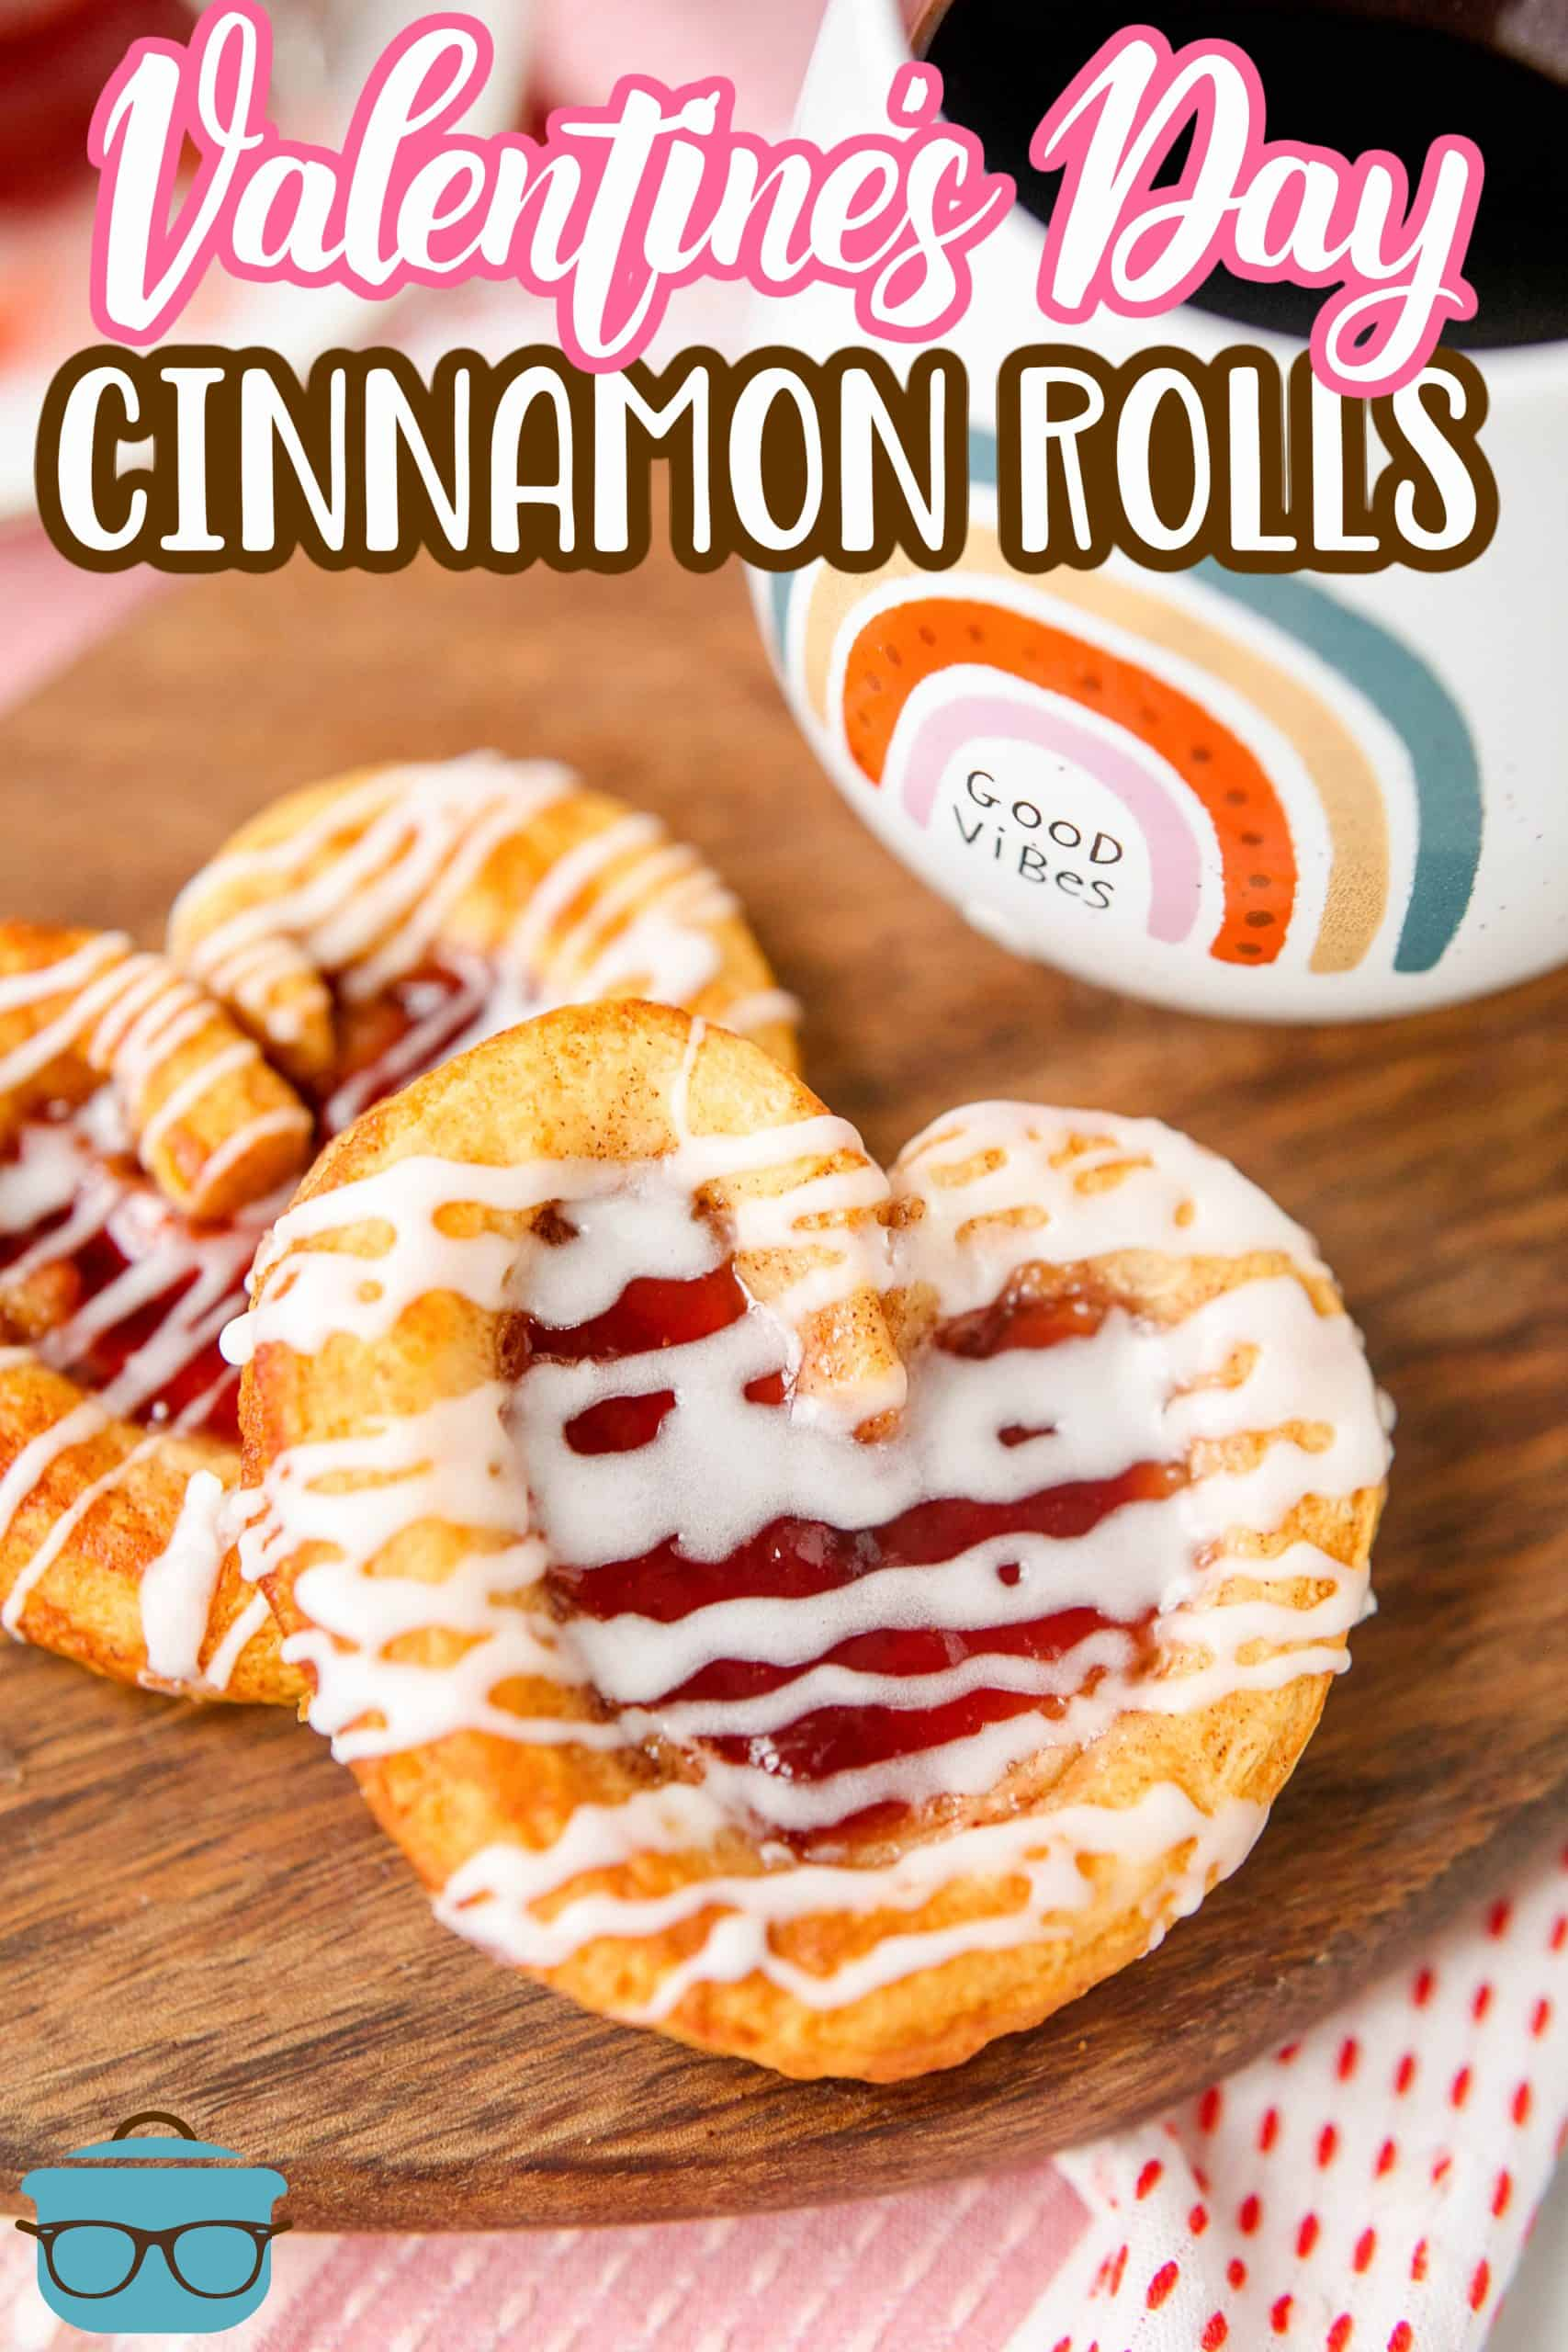 If you are looking for a fun, two-ingredient recipe to serve to your loved ones this Valentine's Day, you can't go wrong with these Heart-Shaped Cinnamon Rolls!